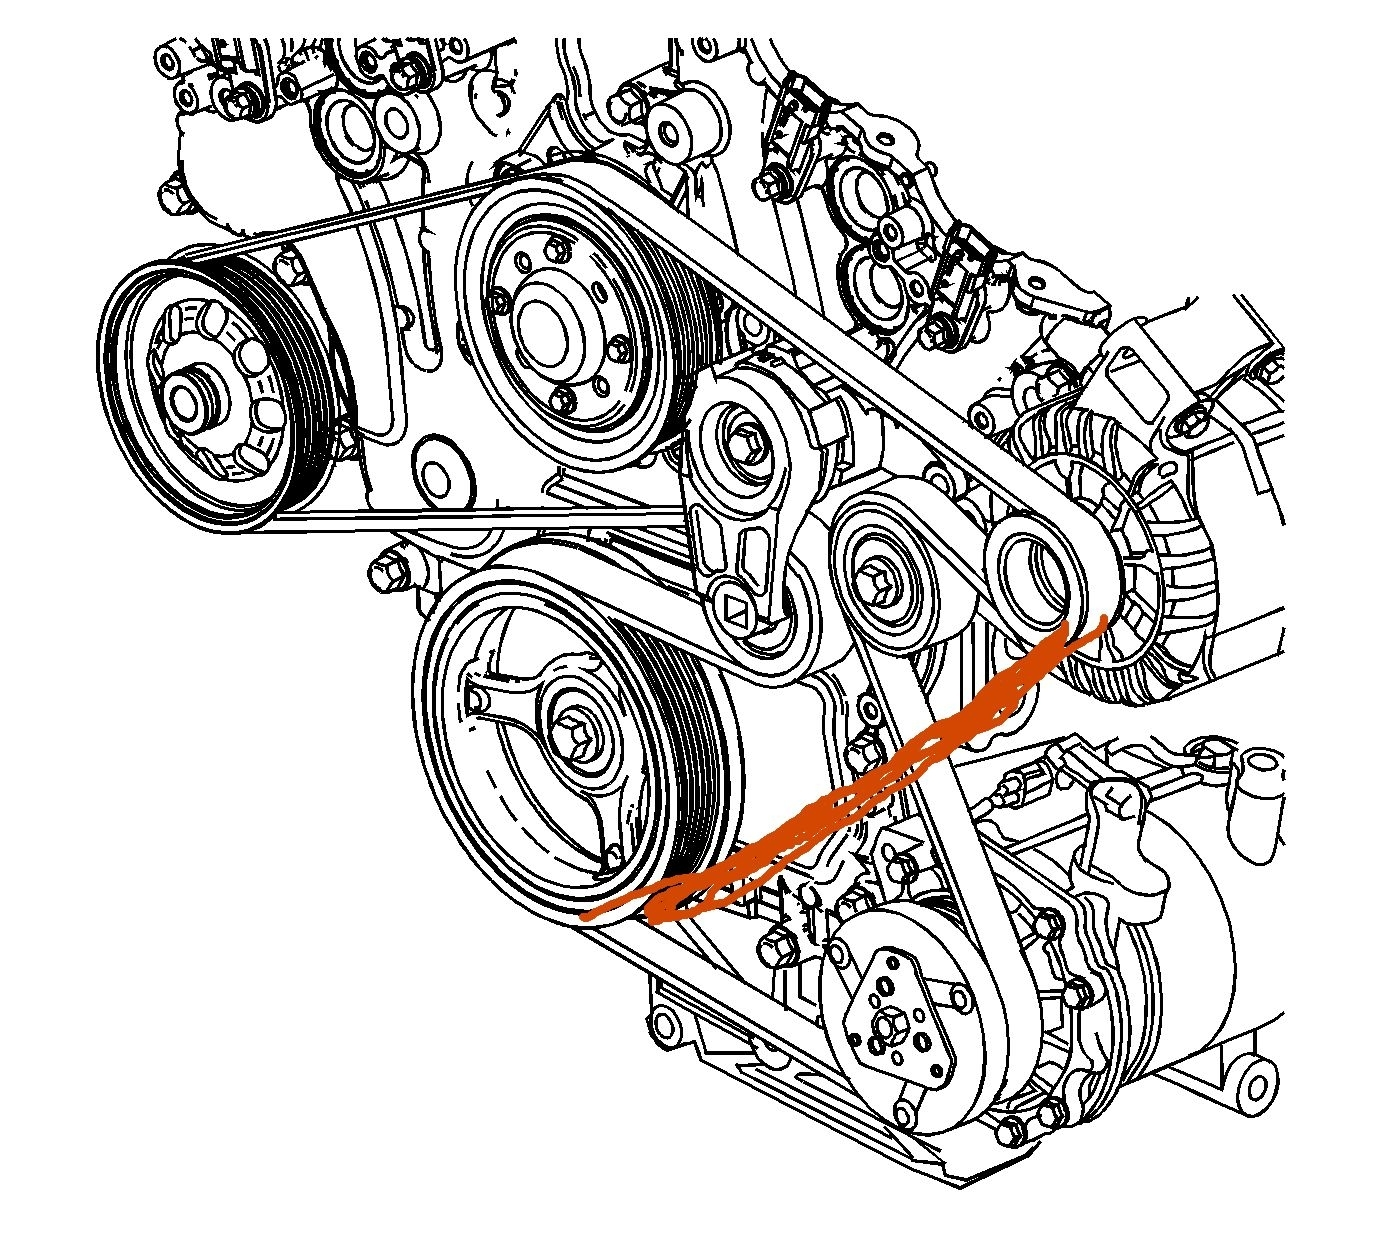 serpentine belt to bypass a c i would like to know if there is a serpentine belt to bypass a c i would